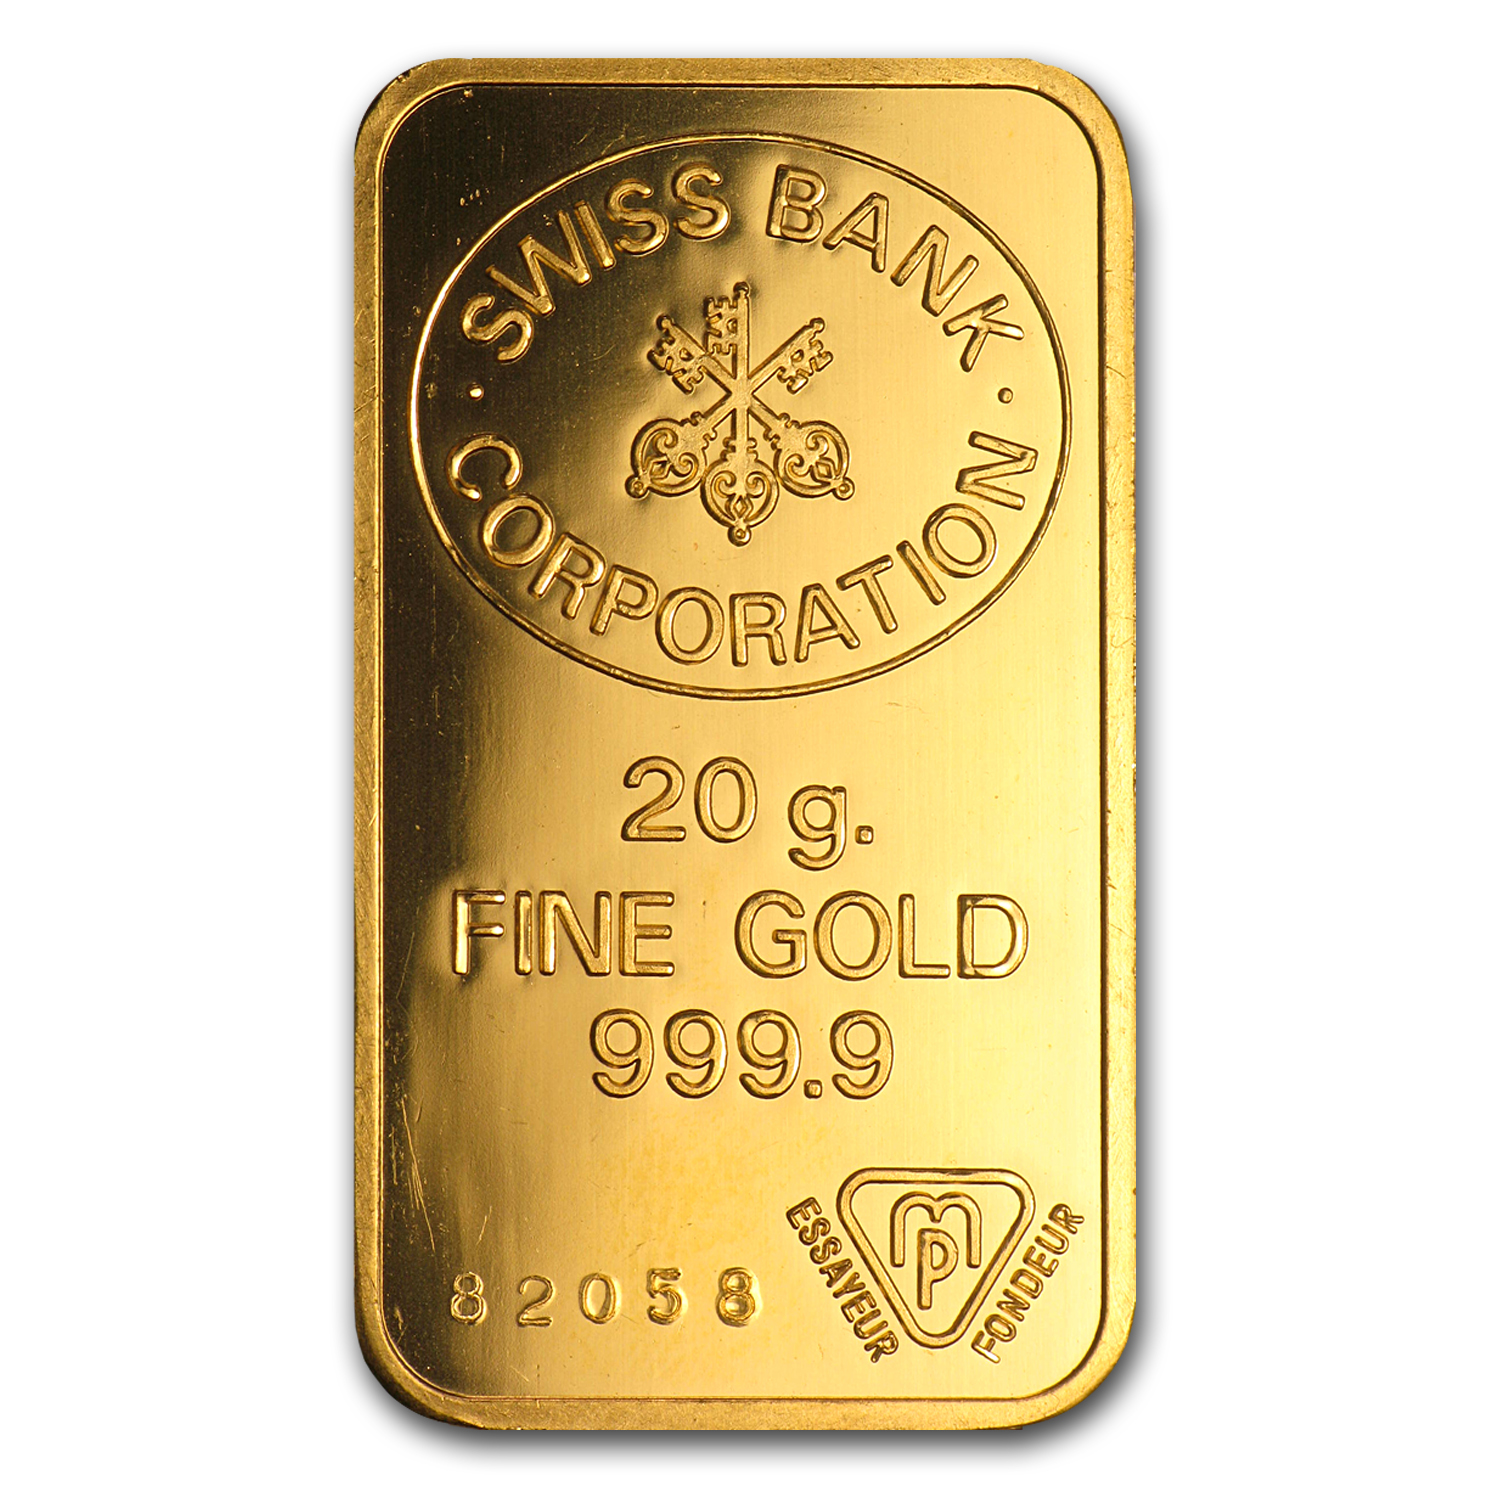 20 gram Gold Bar - Swiss Bank Corporation